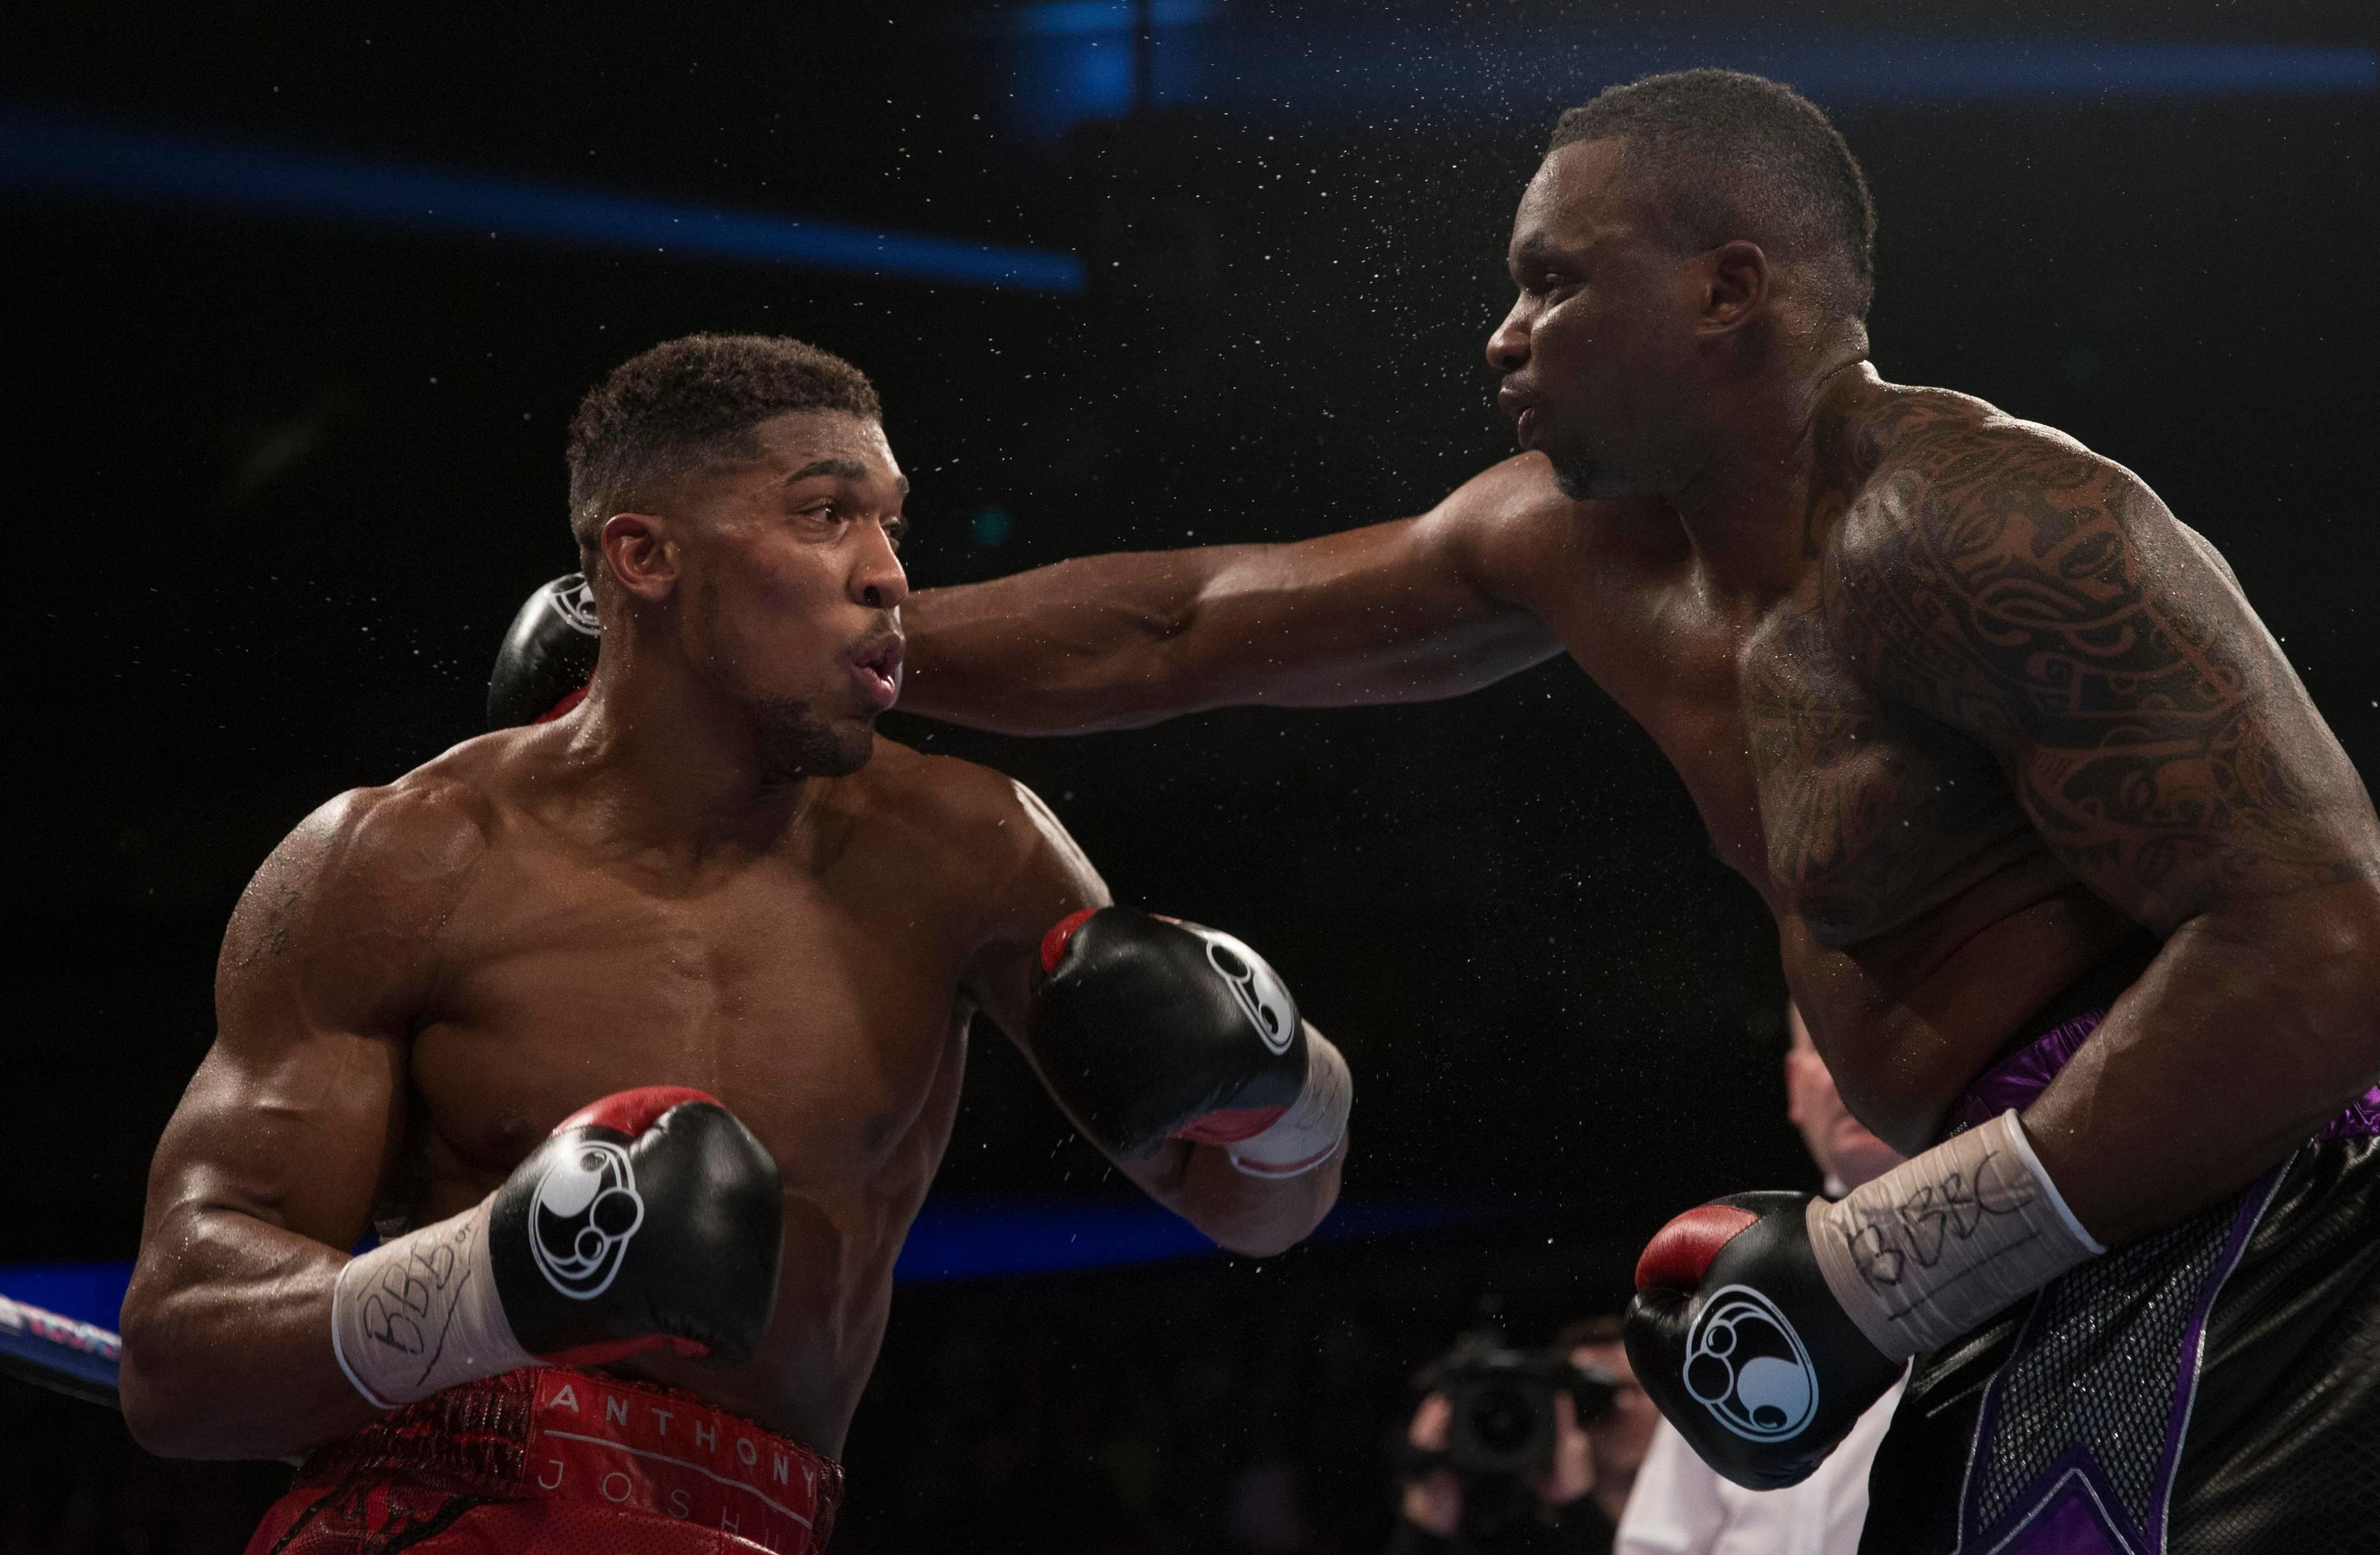 Anthony Joshua has warned Deontay Wilder he will happily fight Dillian Whyte